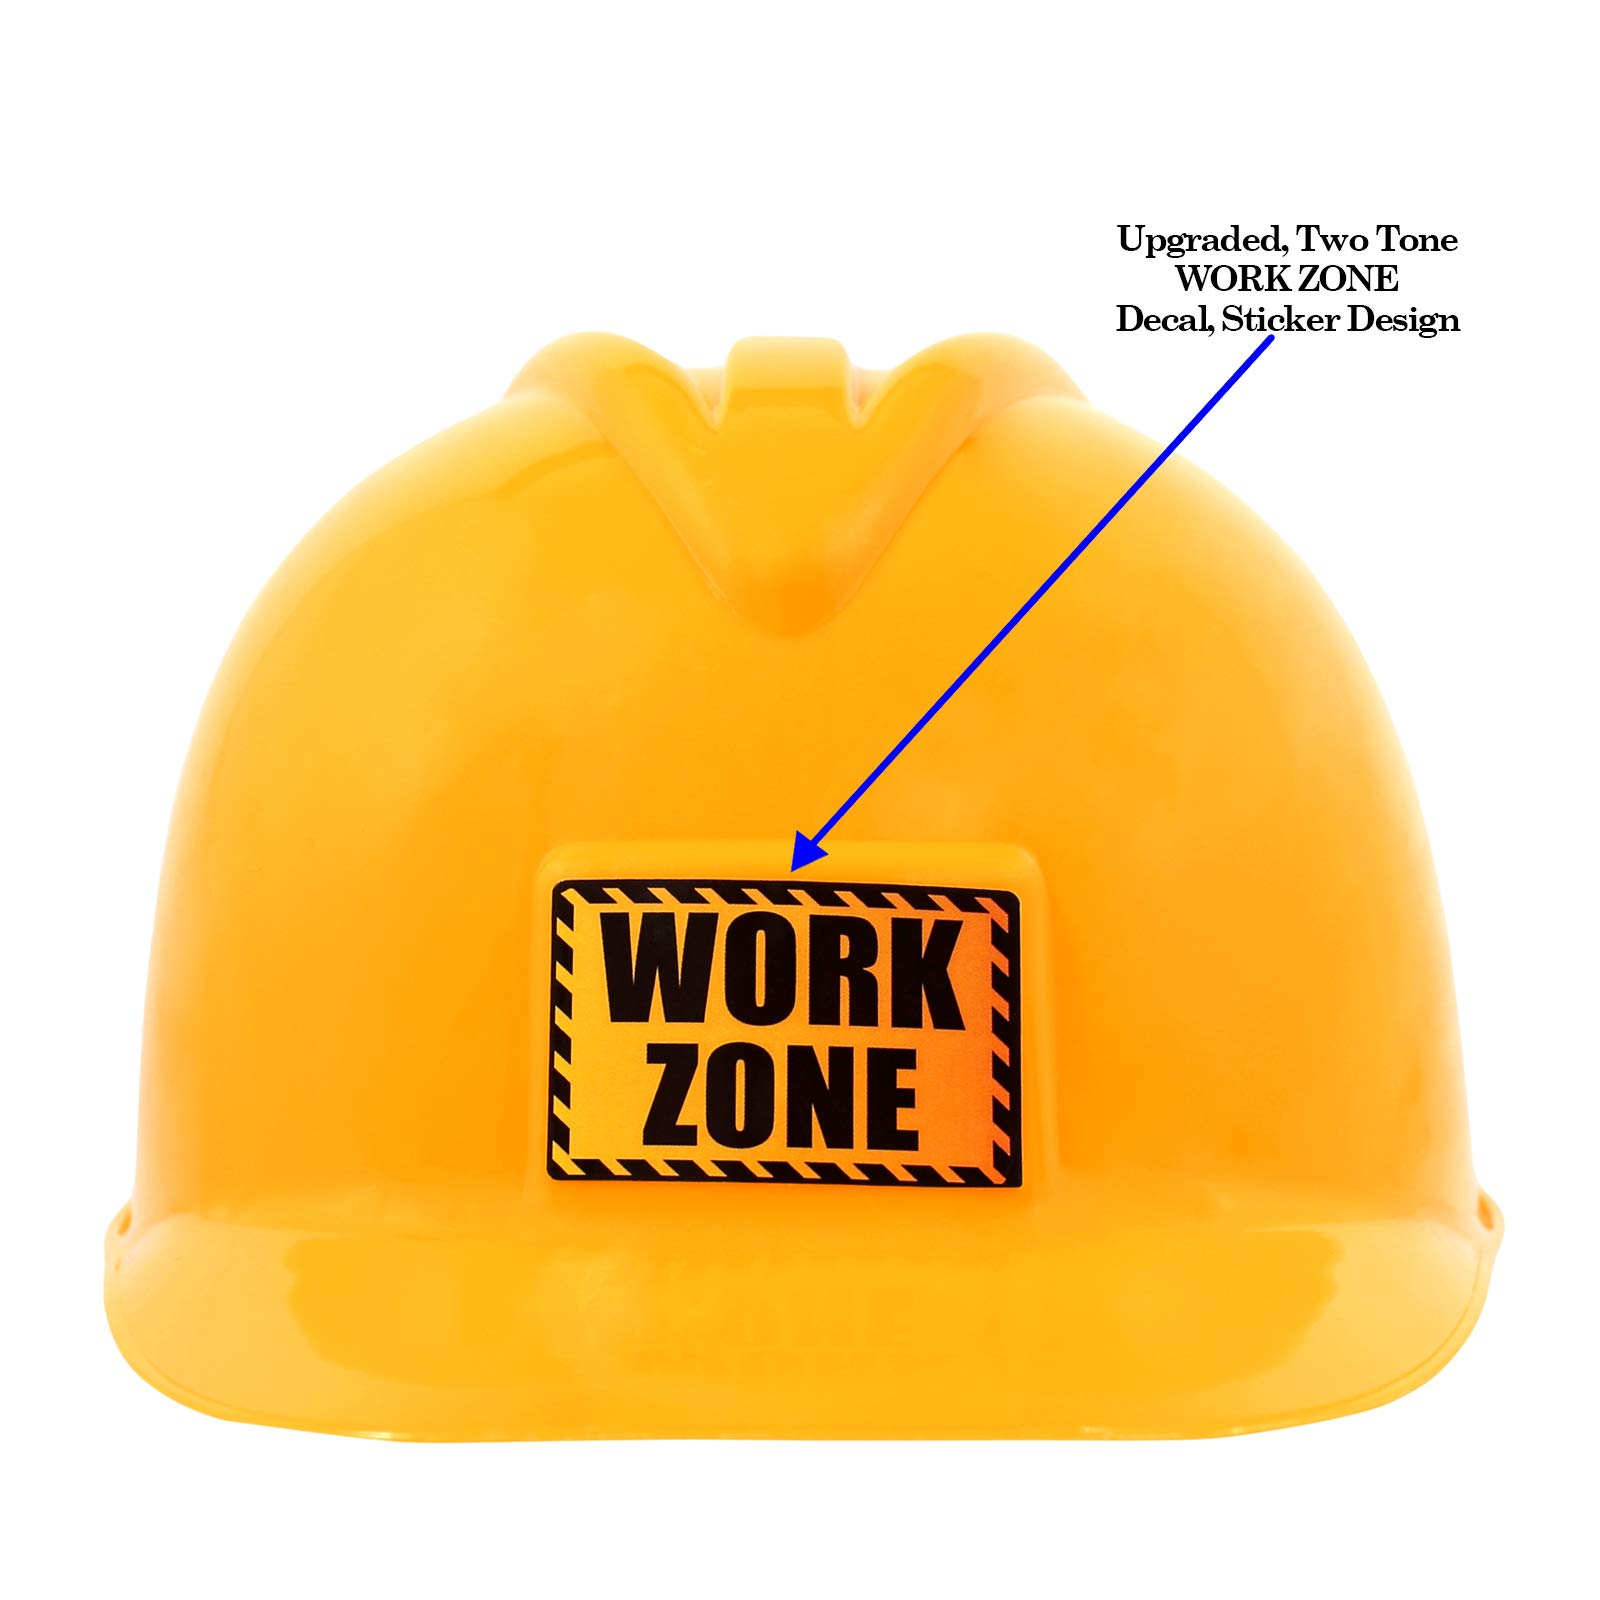 Anapoliz Kids Construction Hat | Yellow, Plastic Childrens Hard Hat | Toy Construction Worker Helmet for Kids | Dress Up, Costume, Child Party Hat | Safety, Engineer Hard Plastic Cap